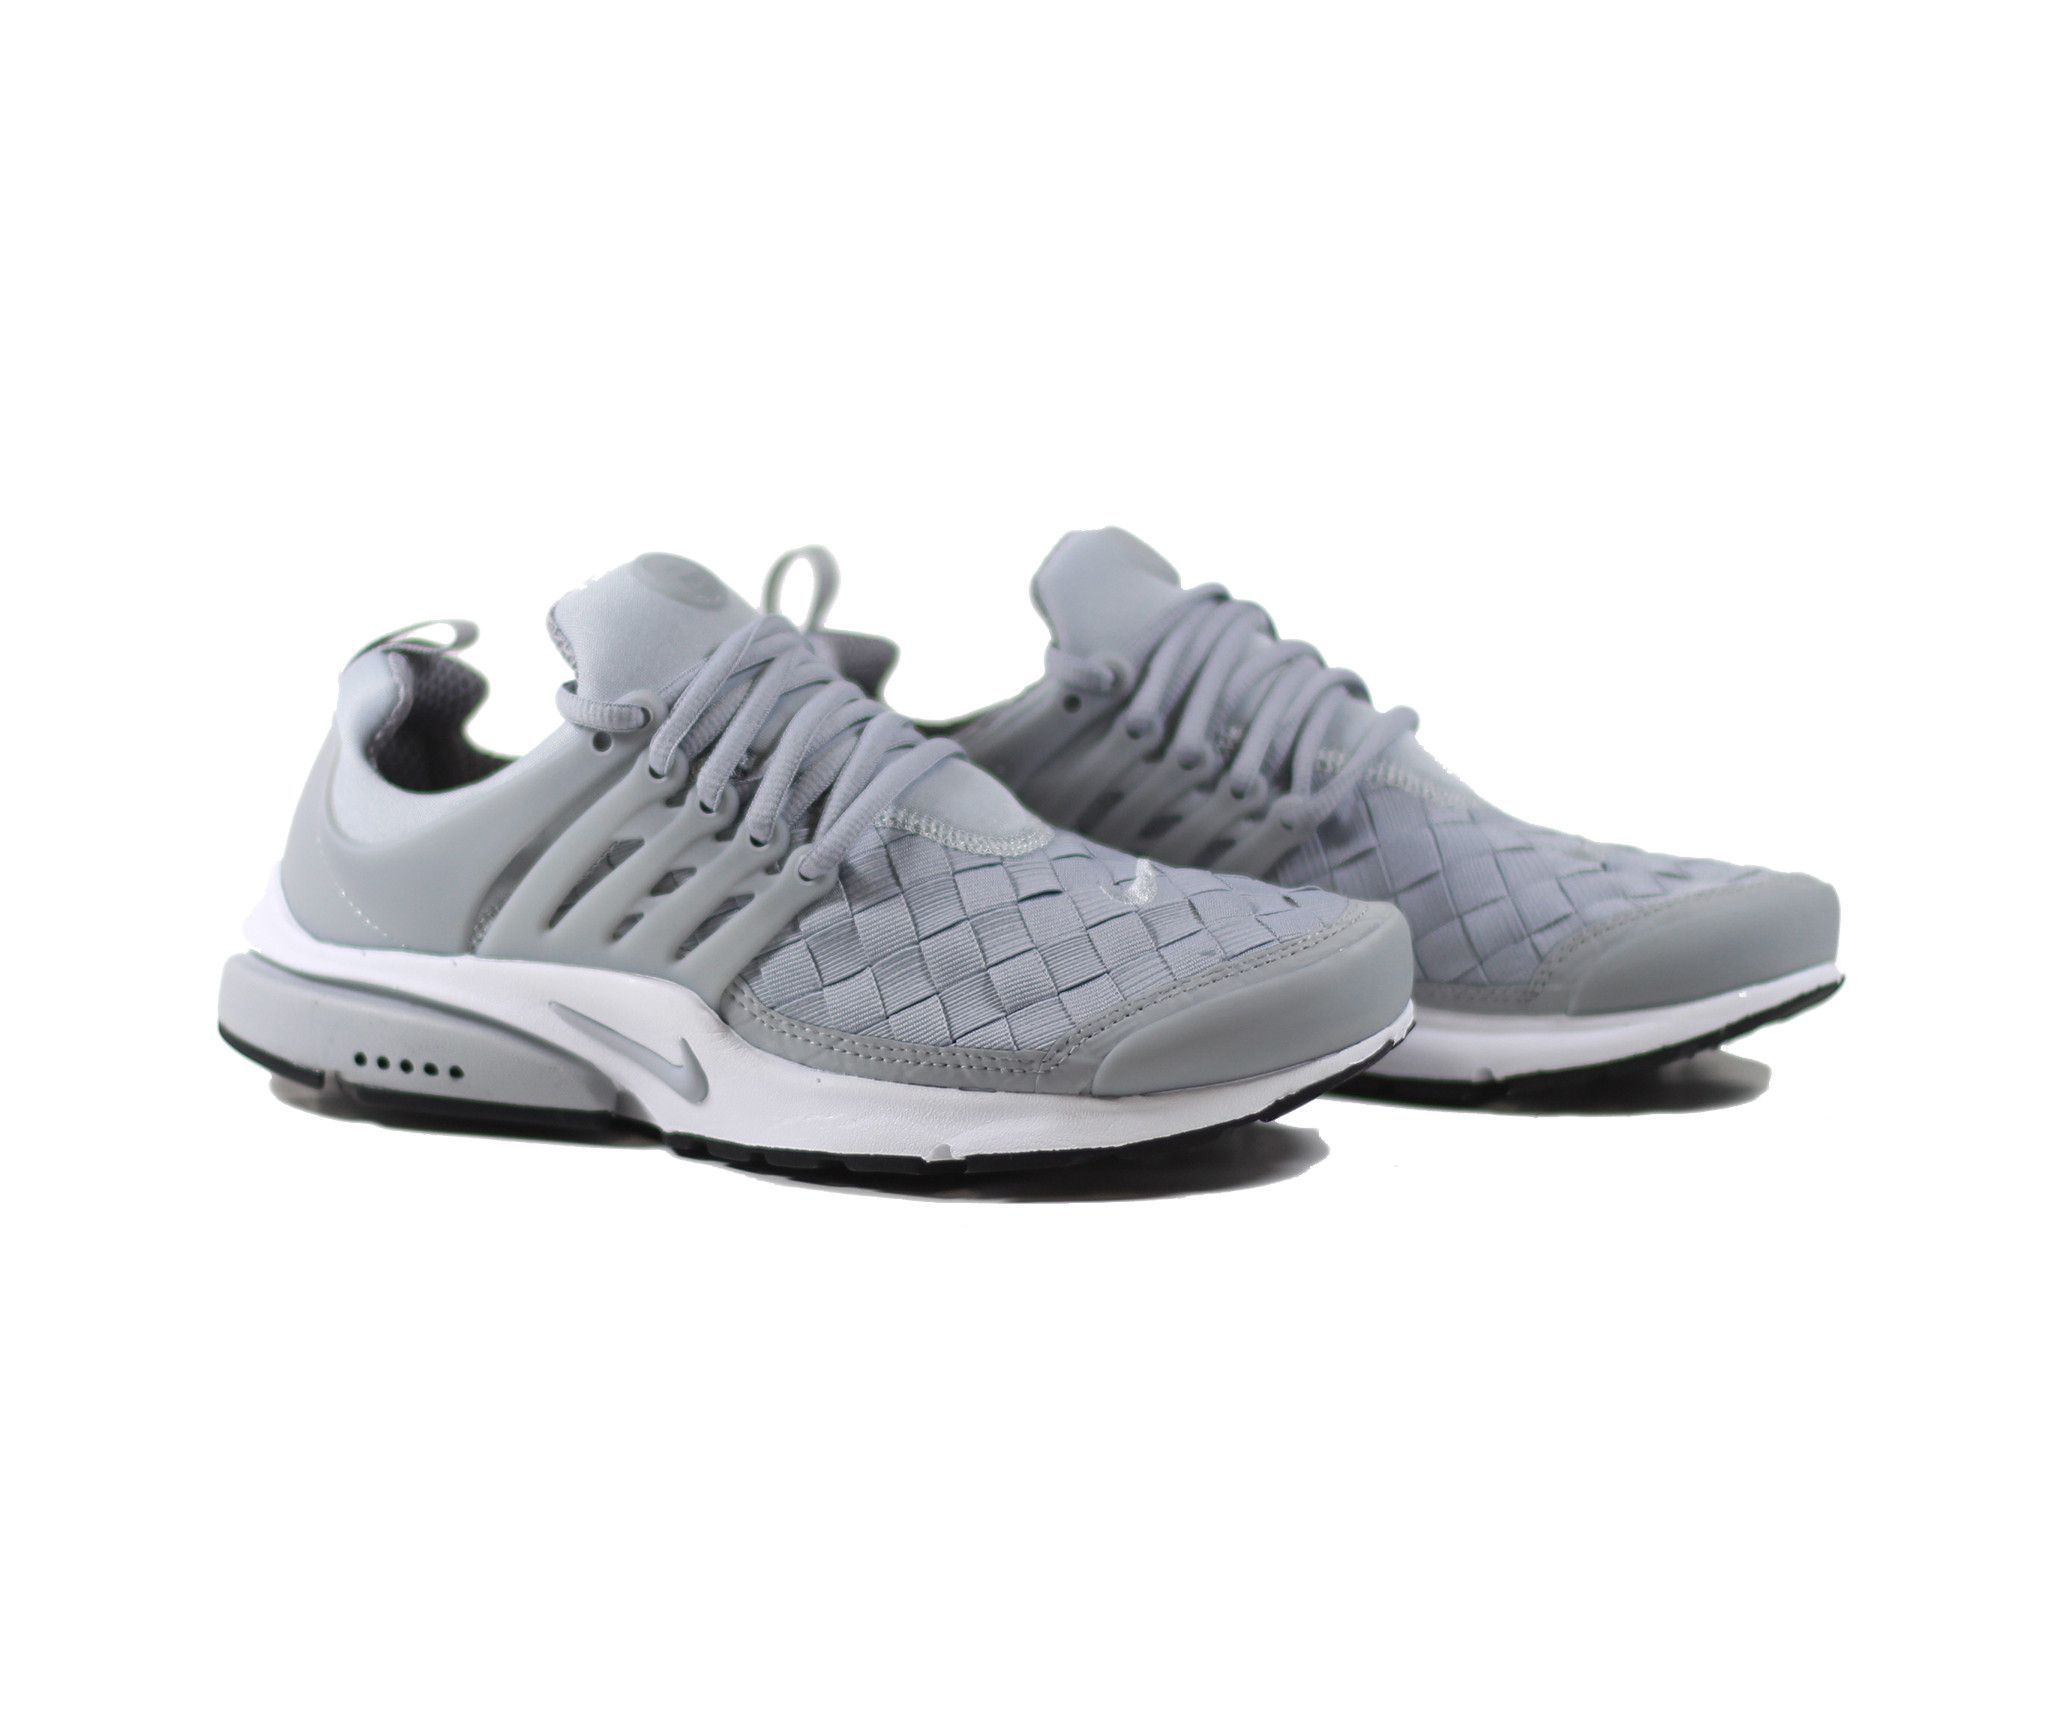 51792af29fdd NIKE Air Presto SE - Wolf Grey Black White